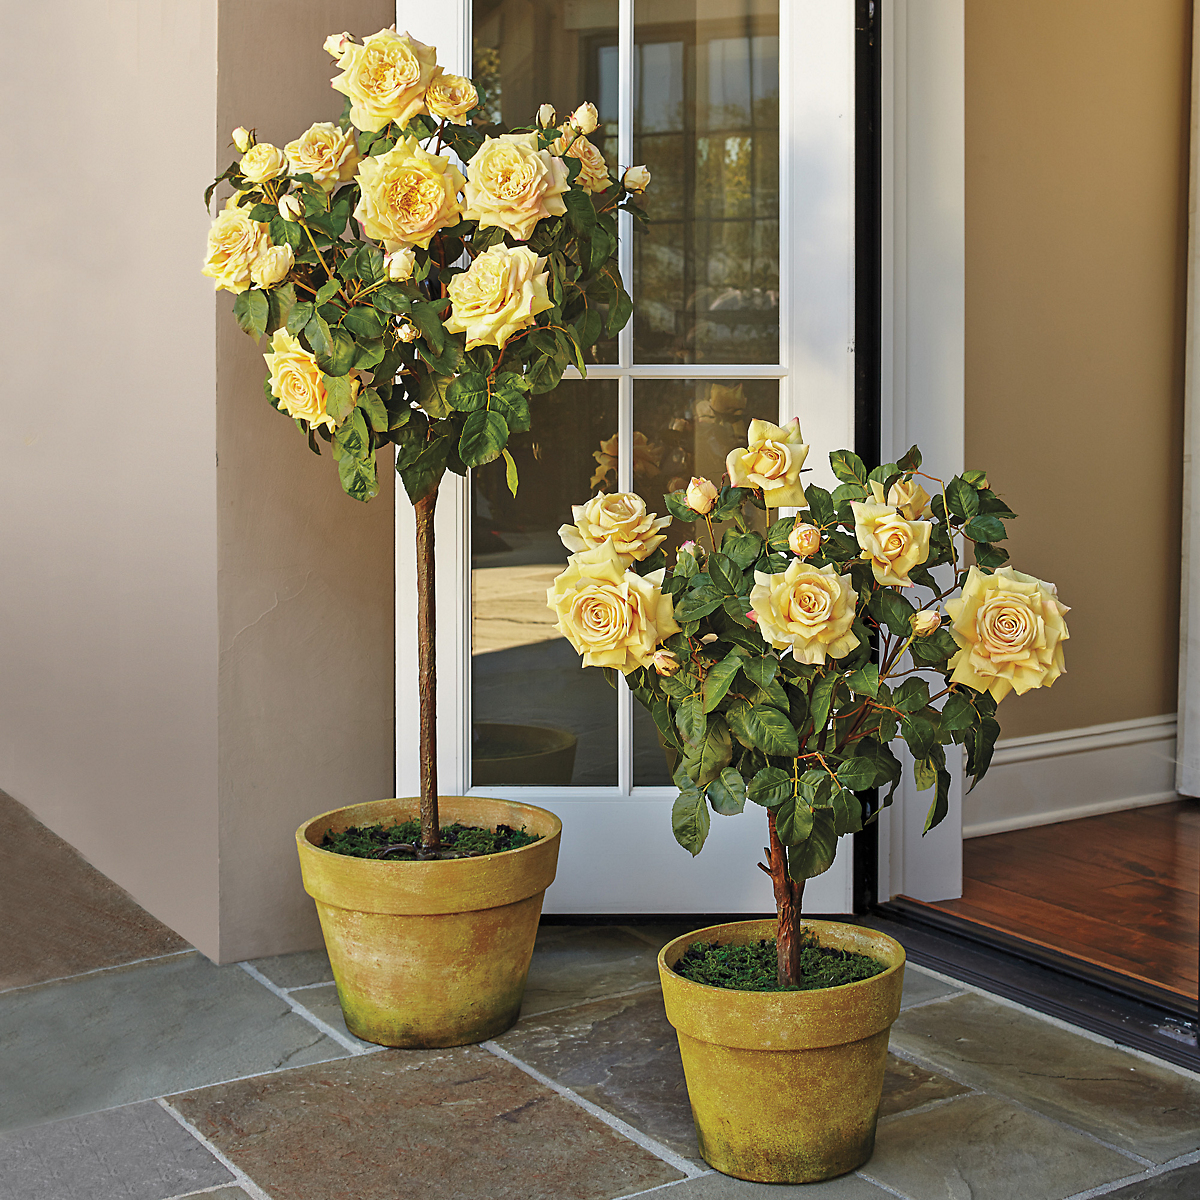 Grand Yellow Rose Bushes